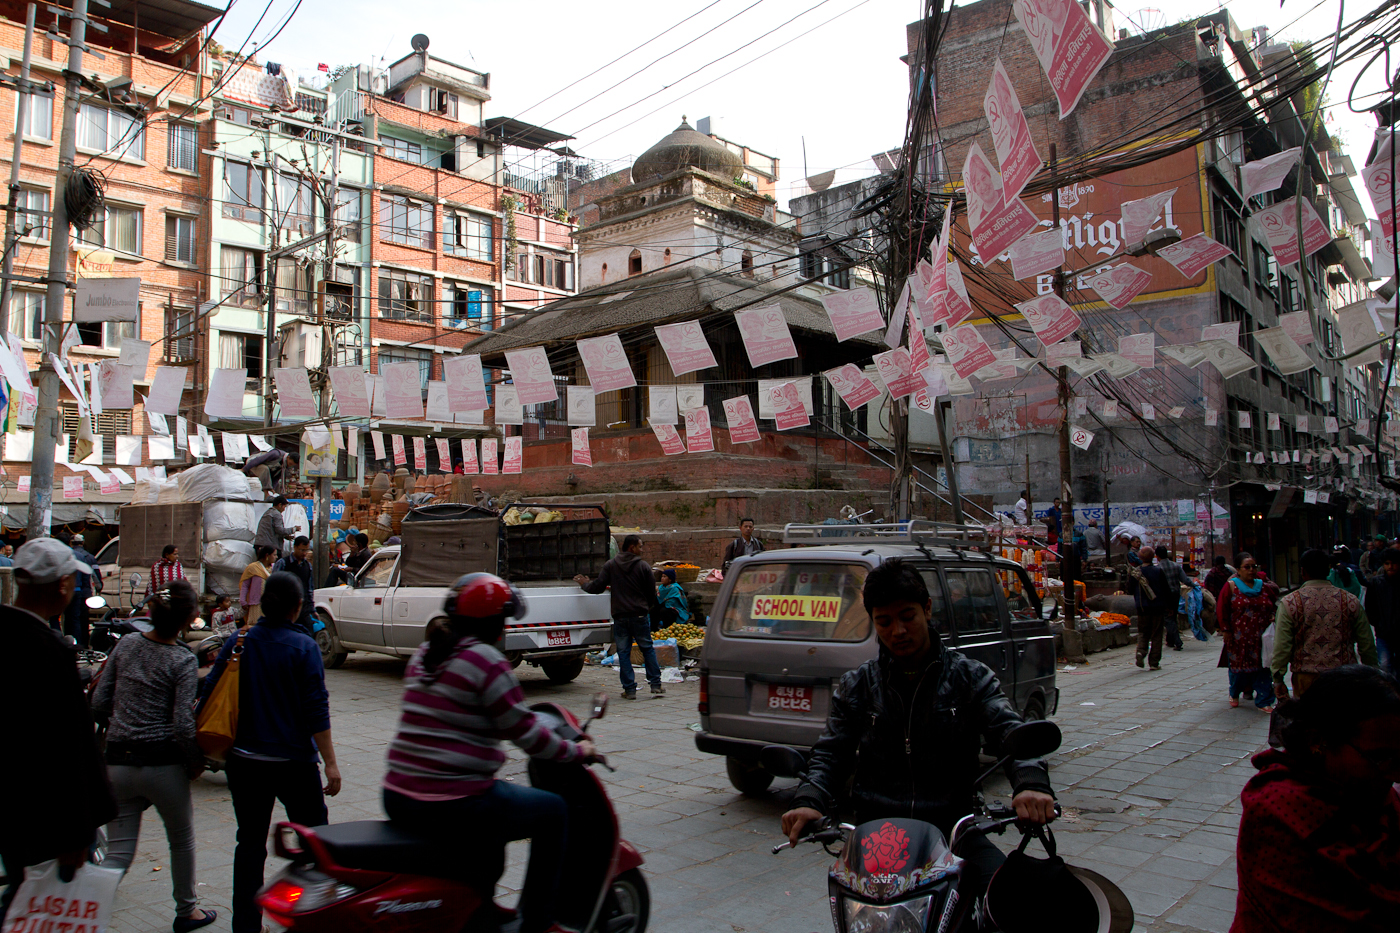 City chaos and election posters in Thamel, Kathmandu